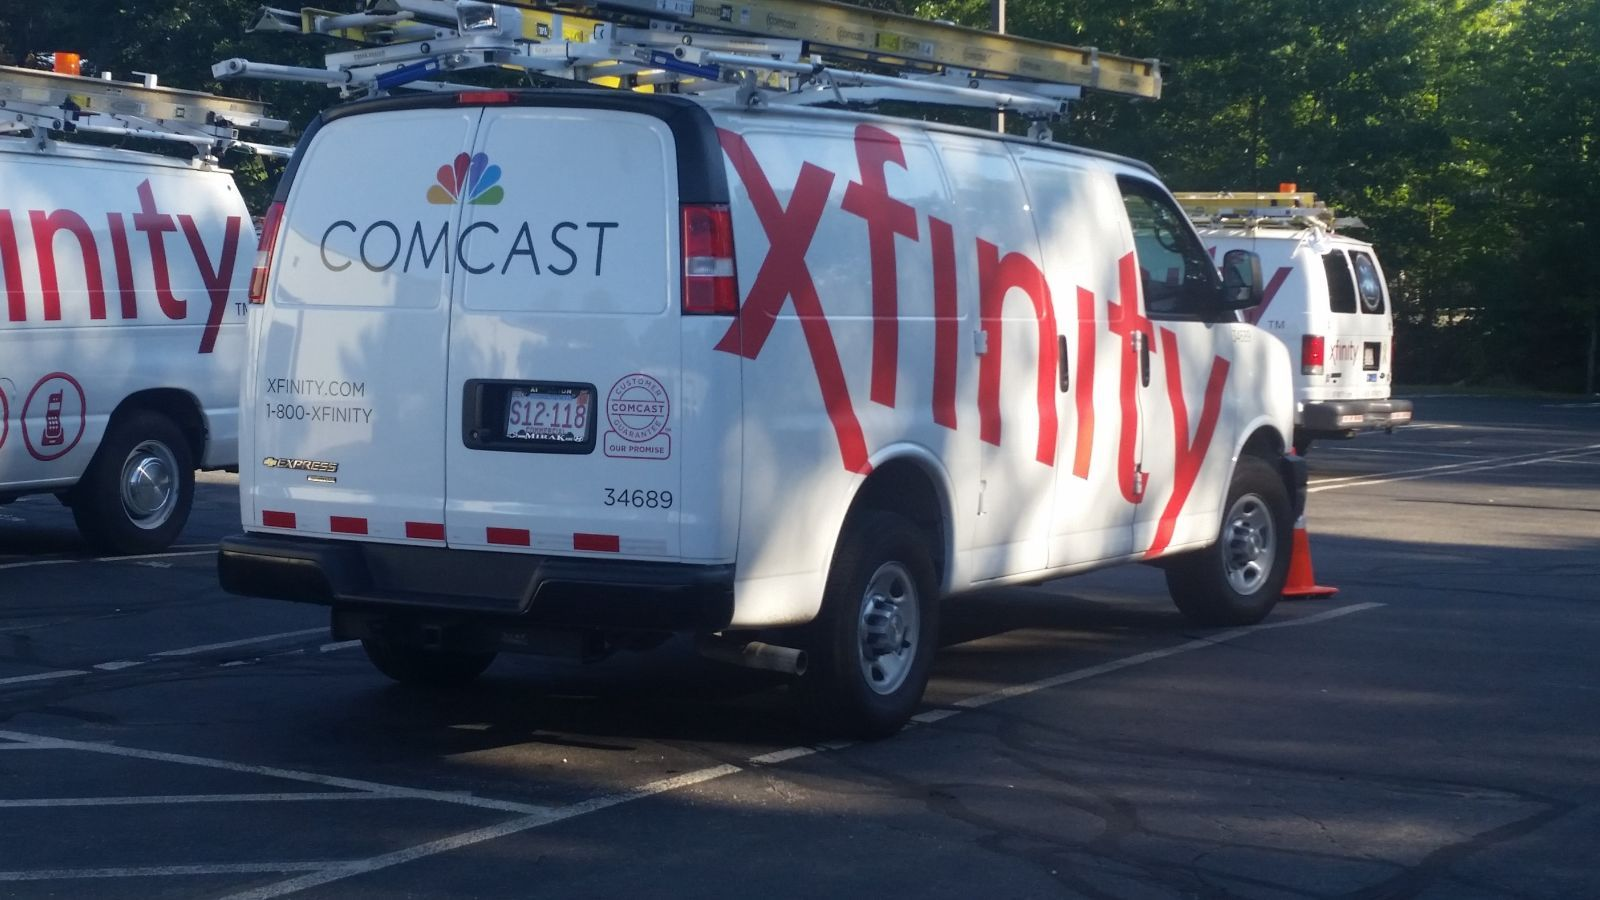 Comcast Cable Giants Sue Maine Over Law Forcing Them To Let Customers Pay For Specific Channels Comcast Xfinity Tv Providers Comcast Cable